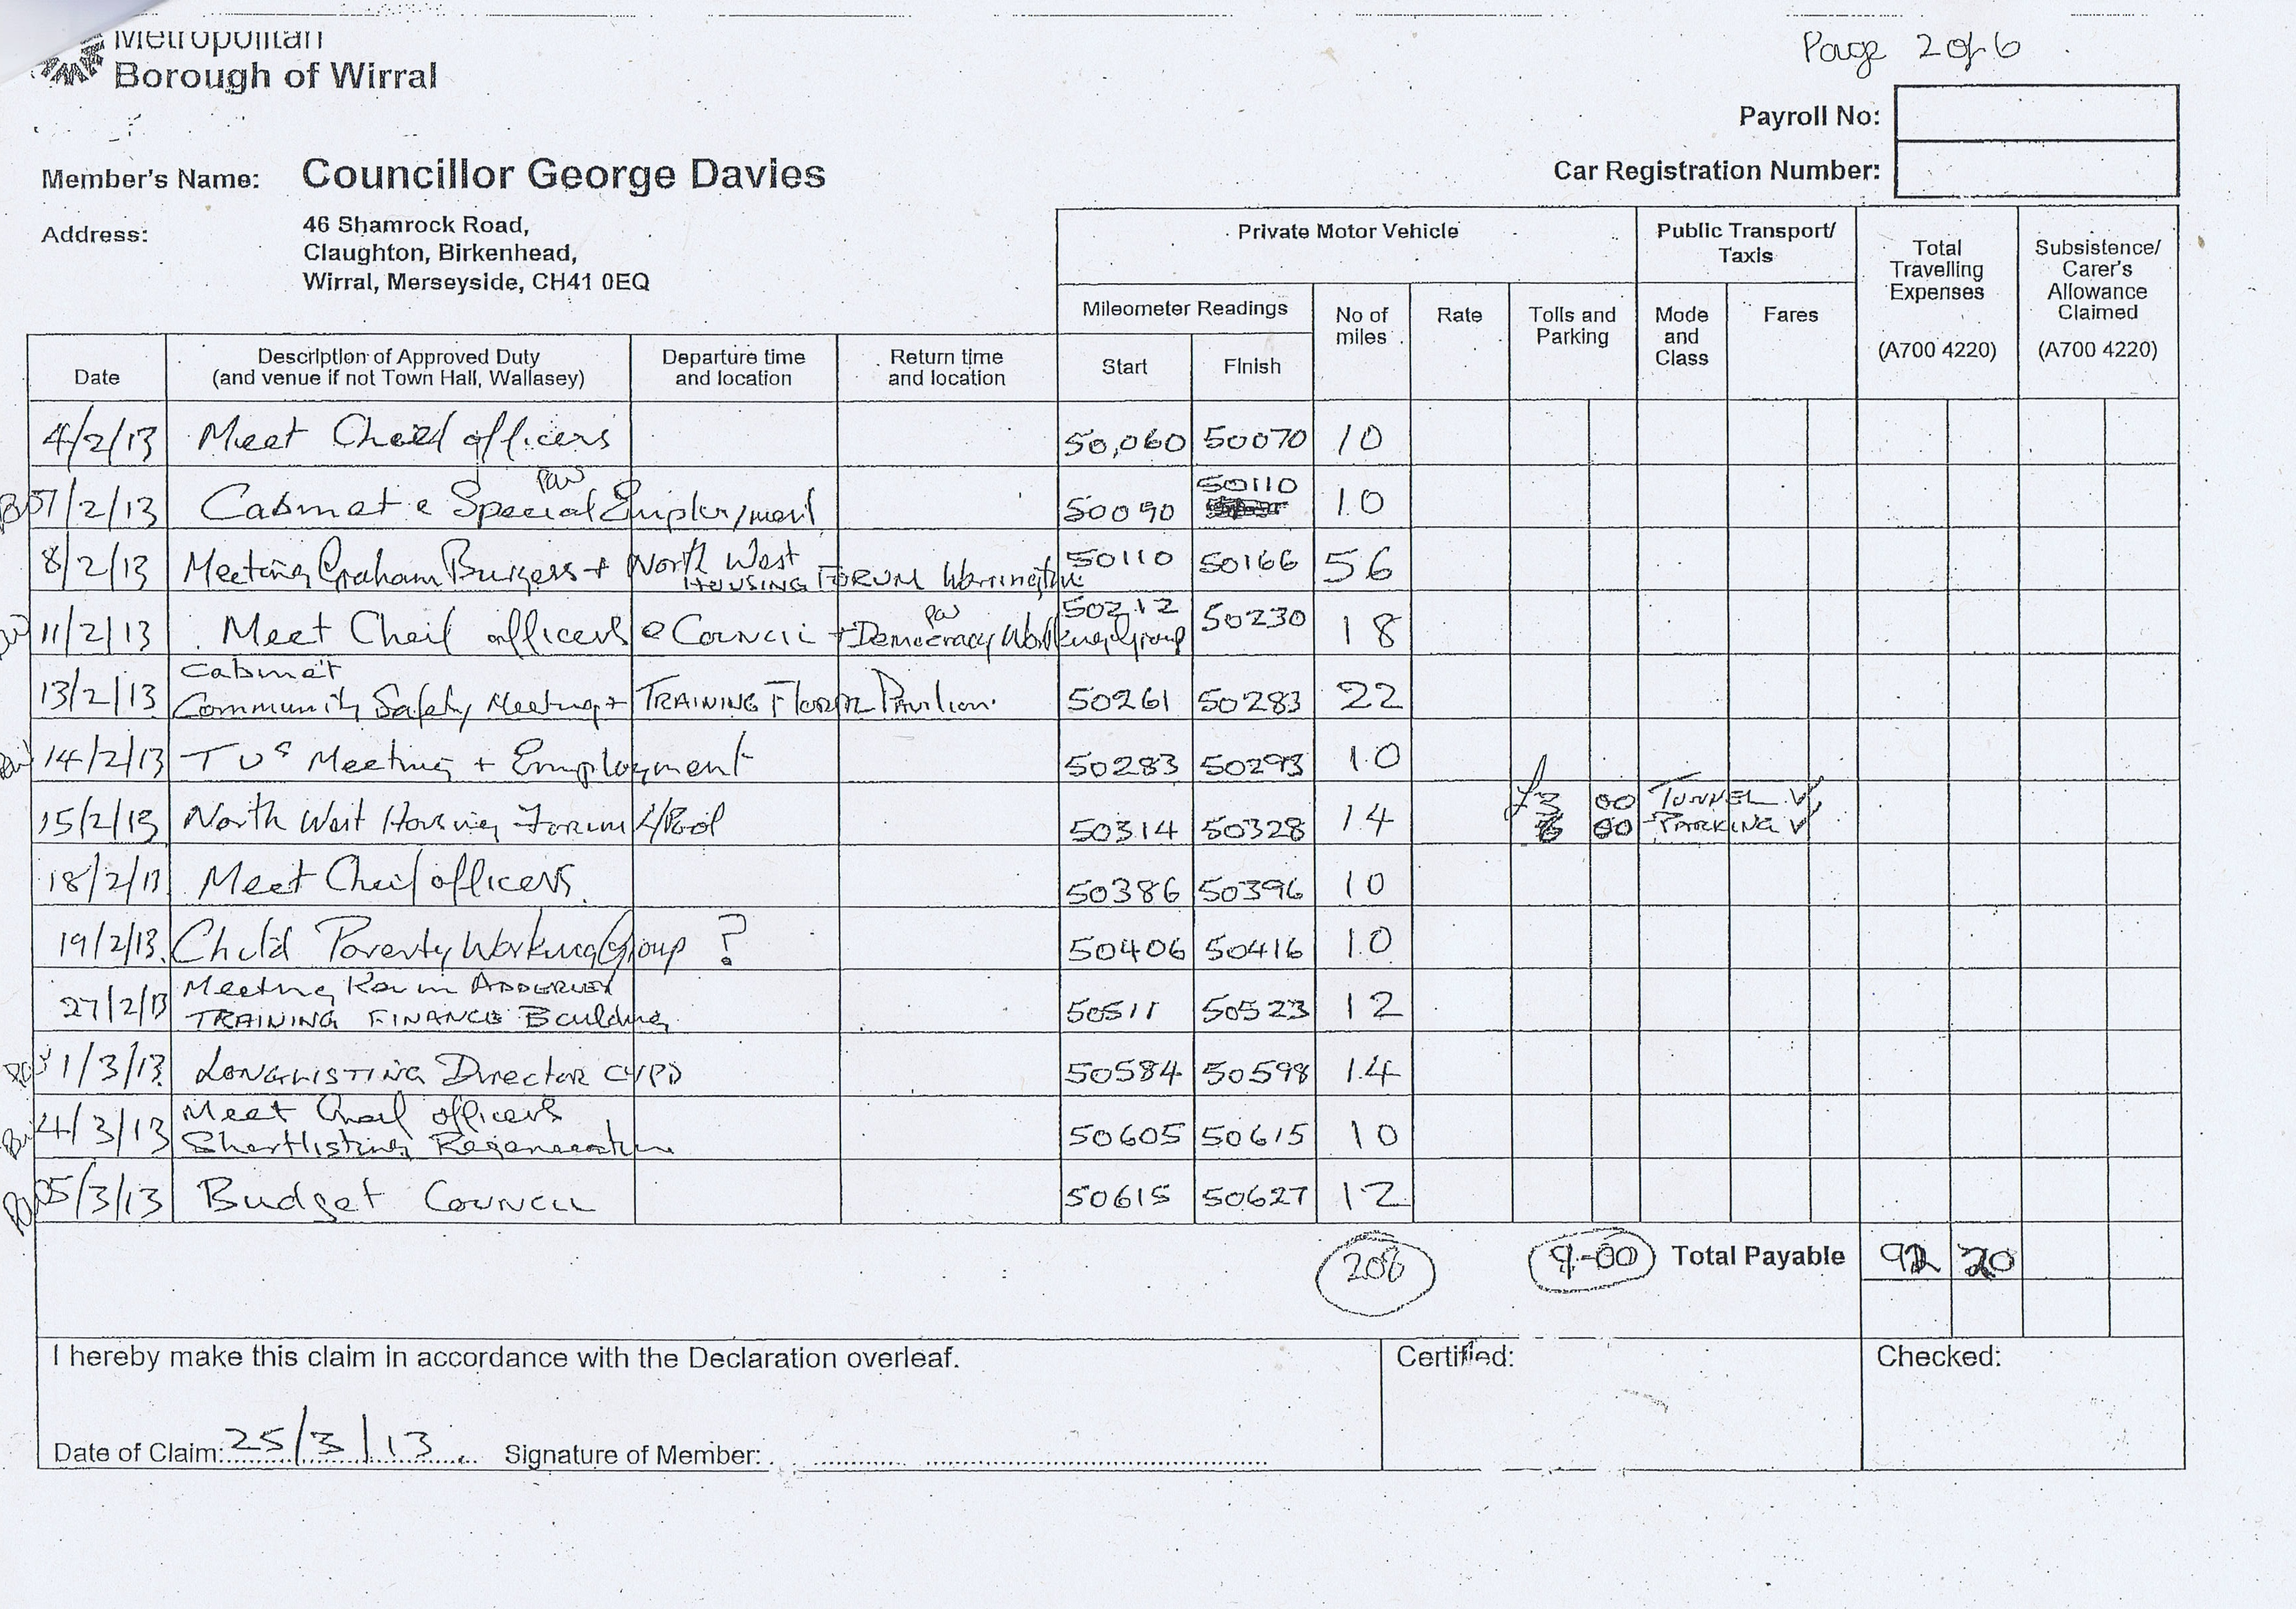 expense claim forms for councillor george davies  wirral council  2013 to 2014a blog about